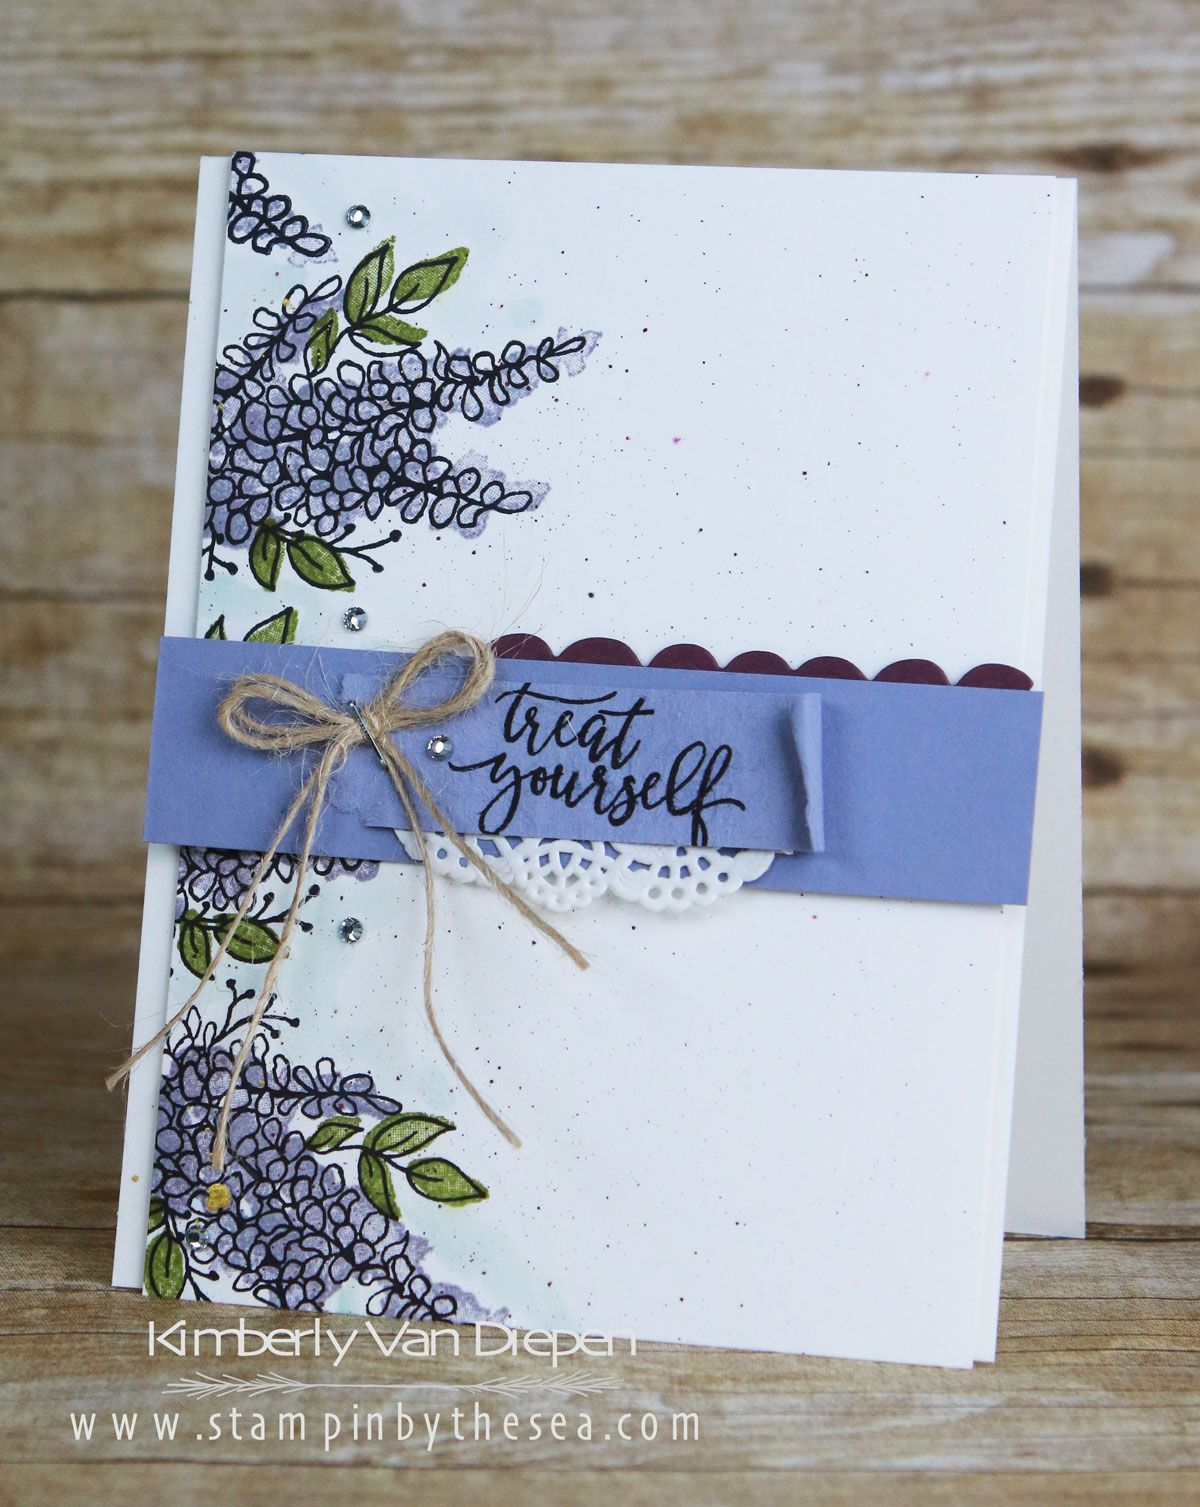 Happy New Year January All Star Tutorial Stampinbythesea Com Lavender Stamp Card Craft Floral Cards